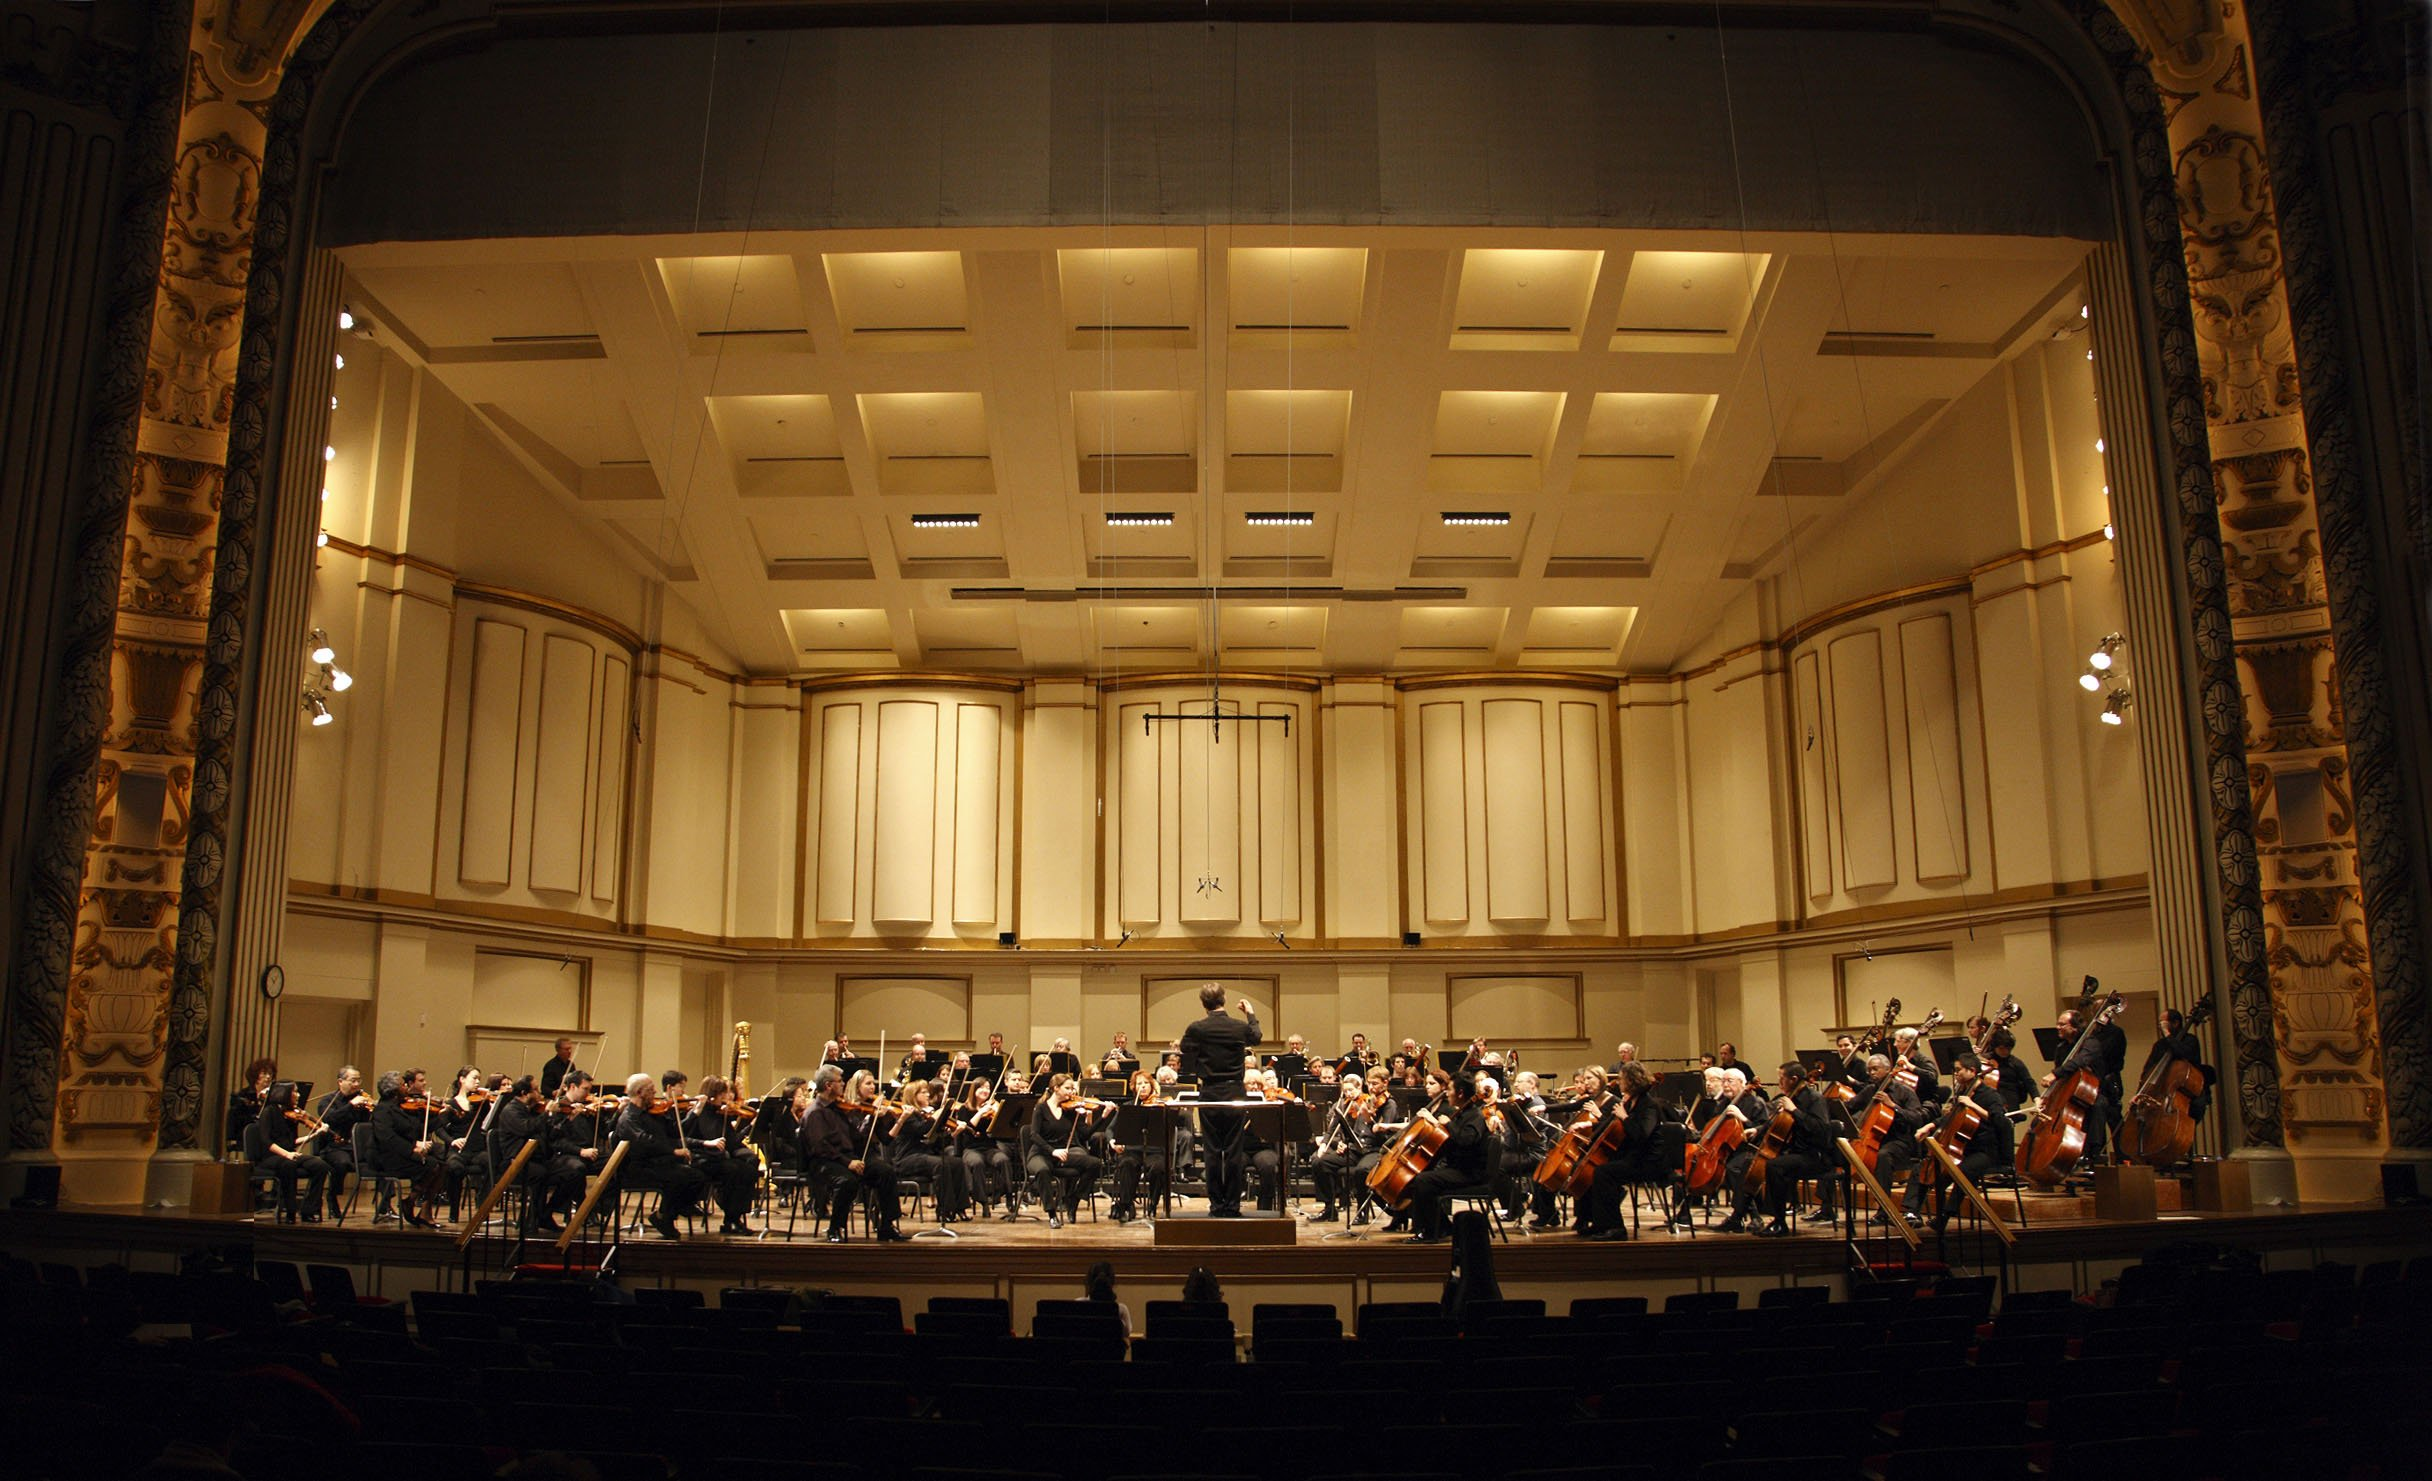 St. Louis Symphony Orchestra. Photo Credit: Scott Ferguson